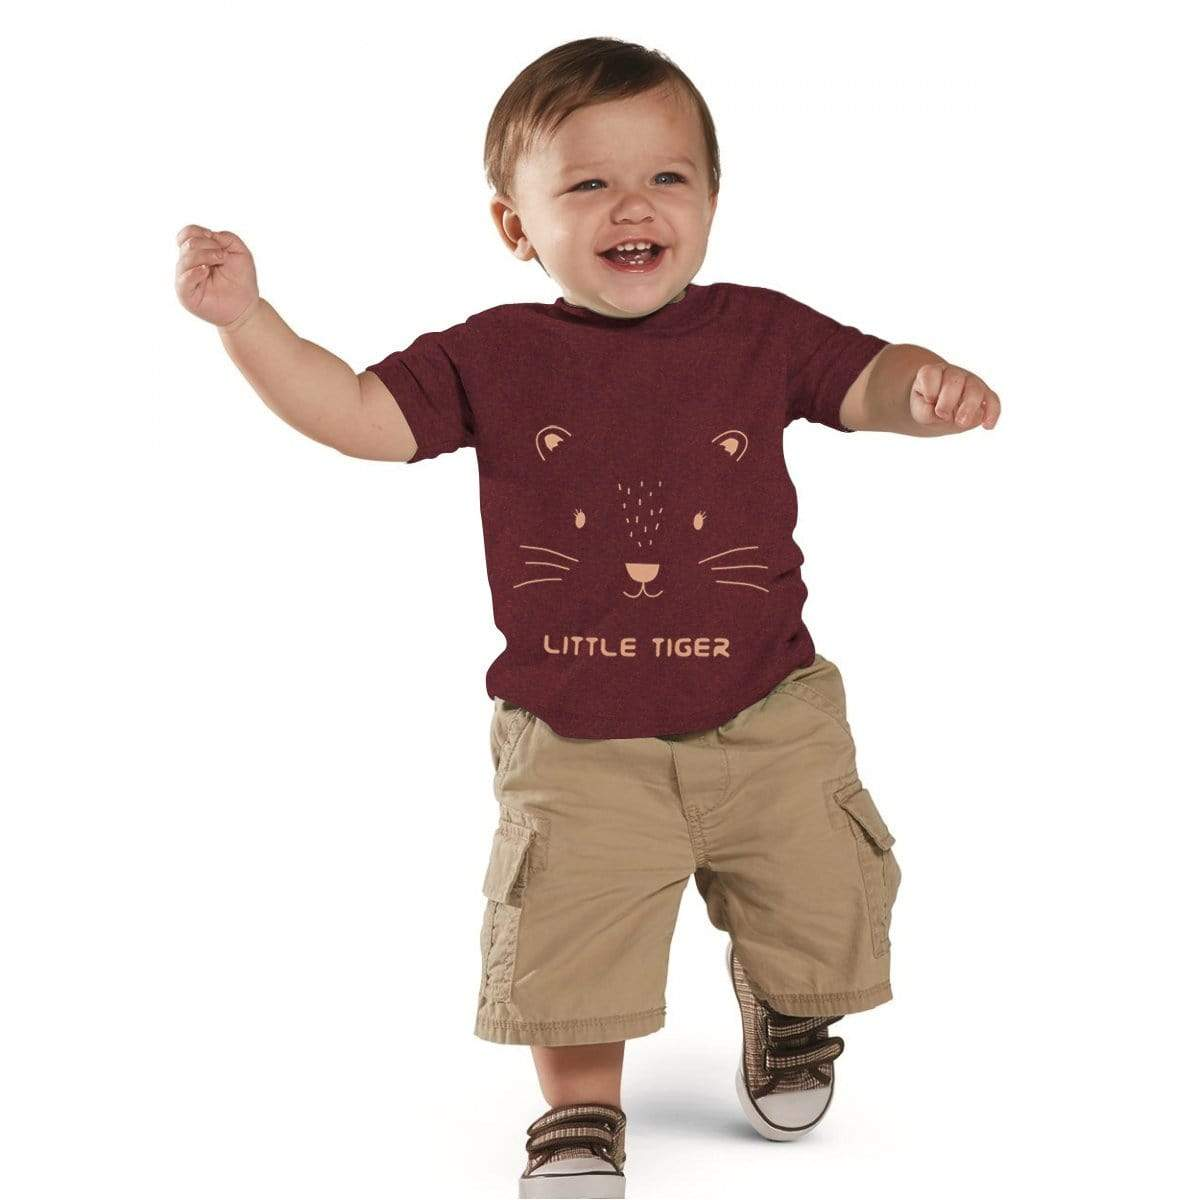 Stone Harbor Kid's Romper Burgundy / 0-3 Months Stone Harbor Little Tiger Crew Neck Tee Shirt